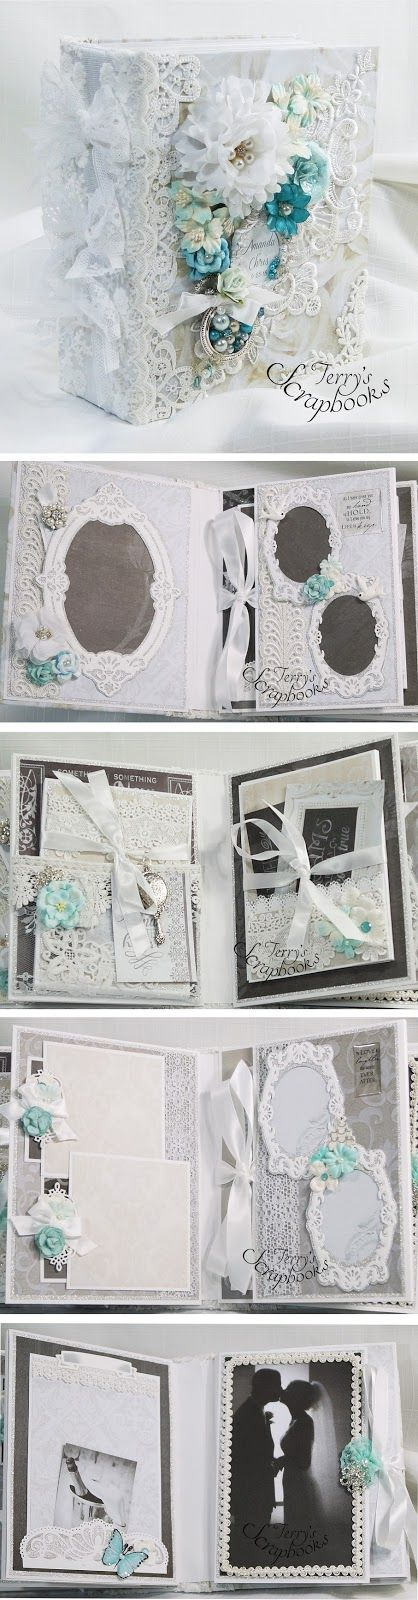 Terry's Scrapbooks: Paper House To Have and to Hold Wedding Mini album Reneabouqets Design Team Project